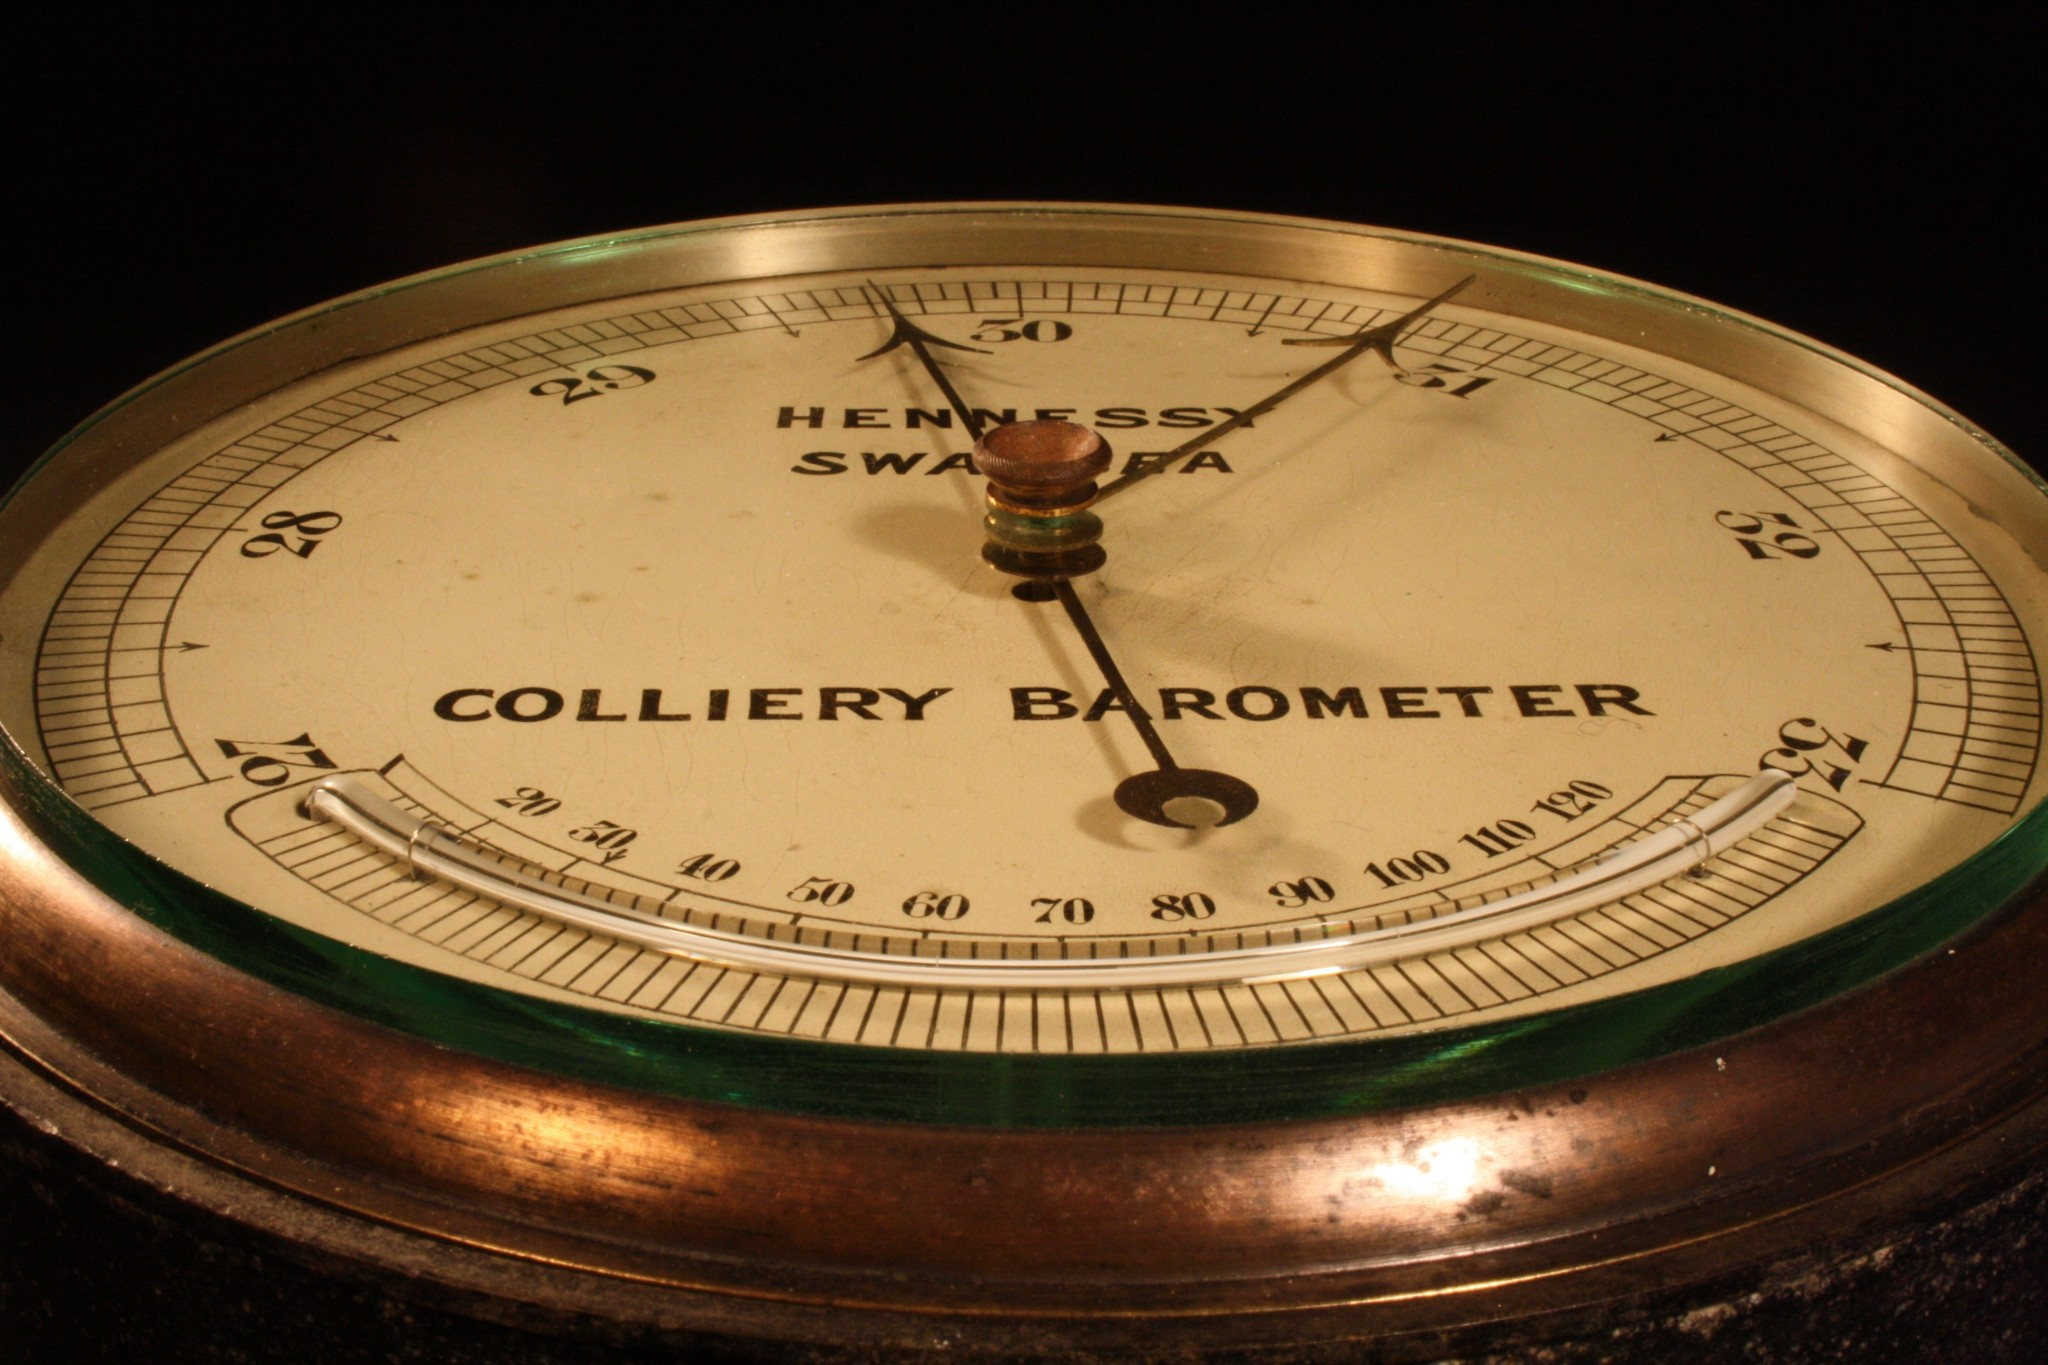 Image of Colliery Barometer by Hennessy